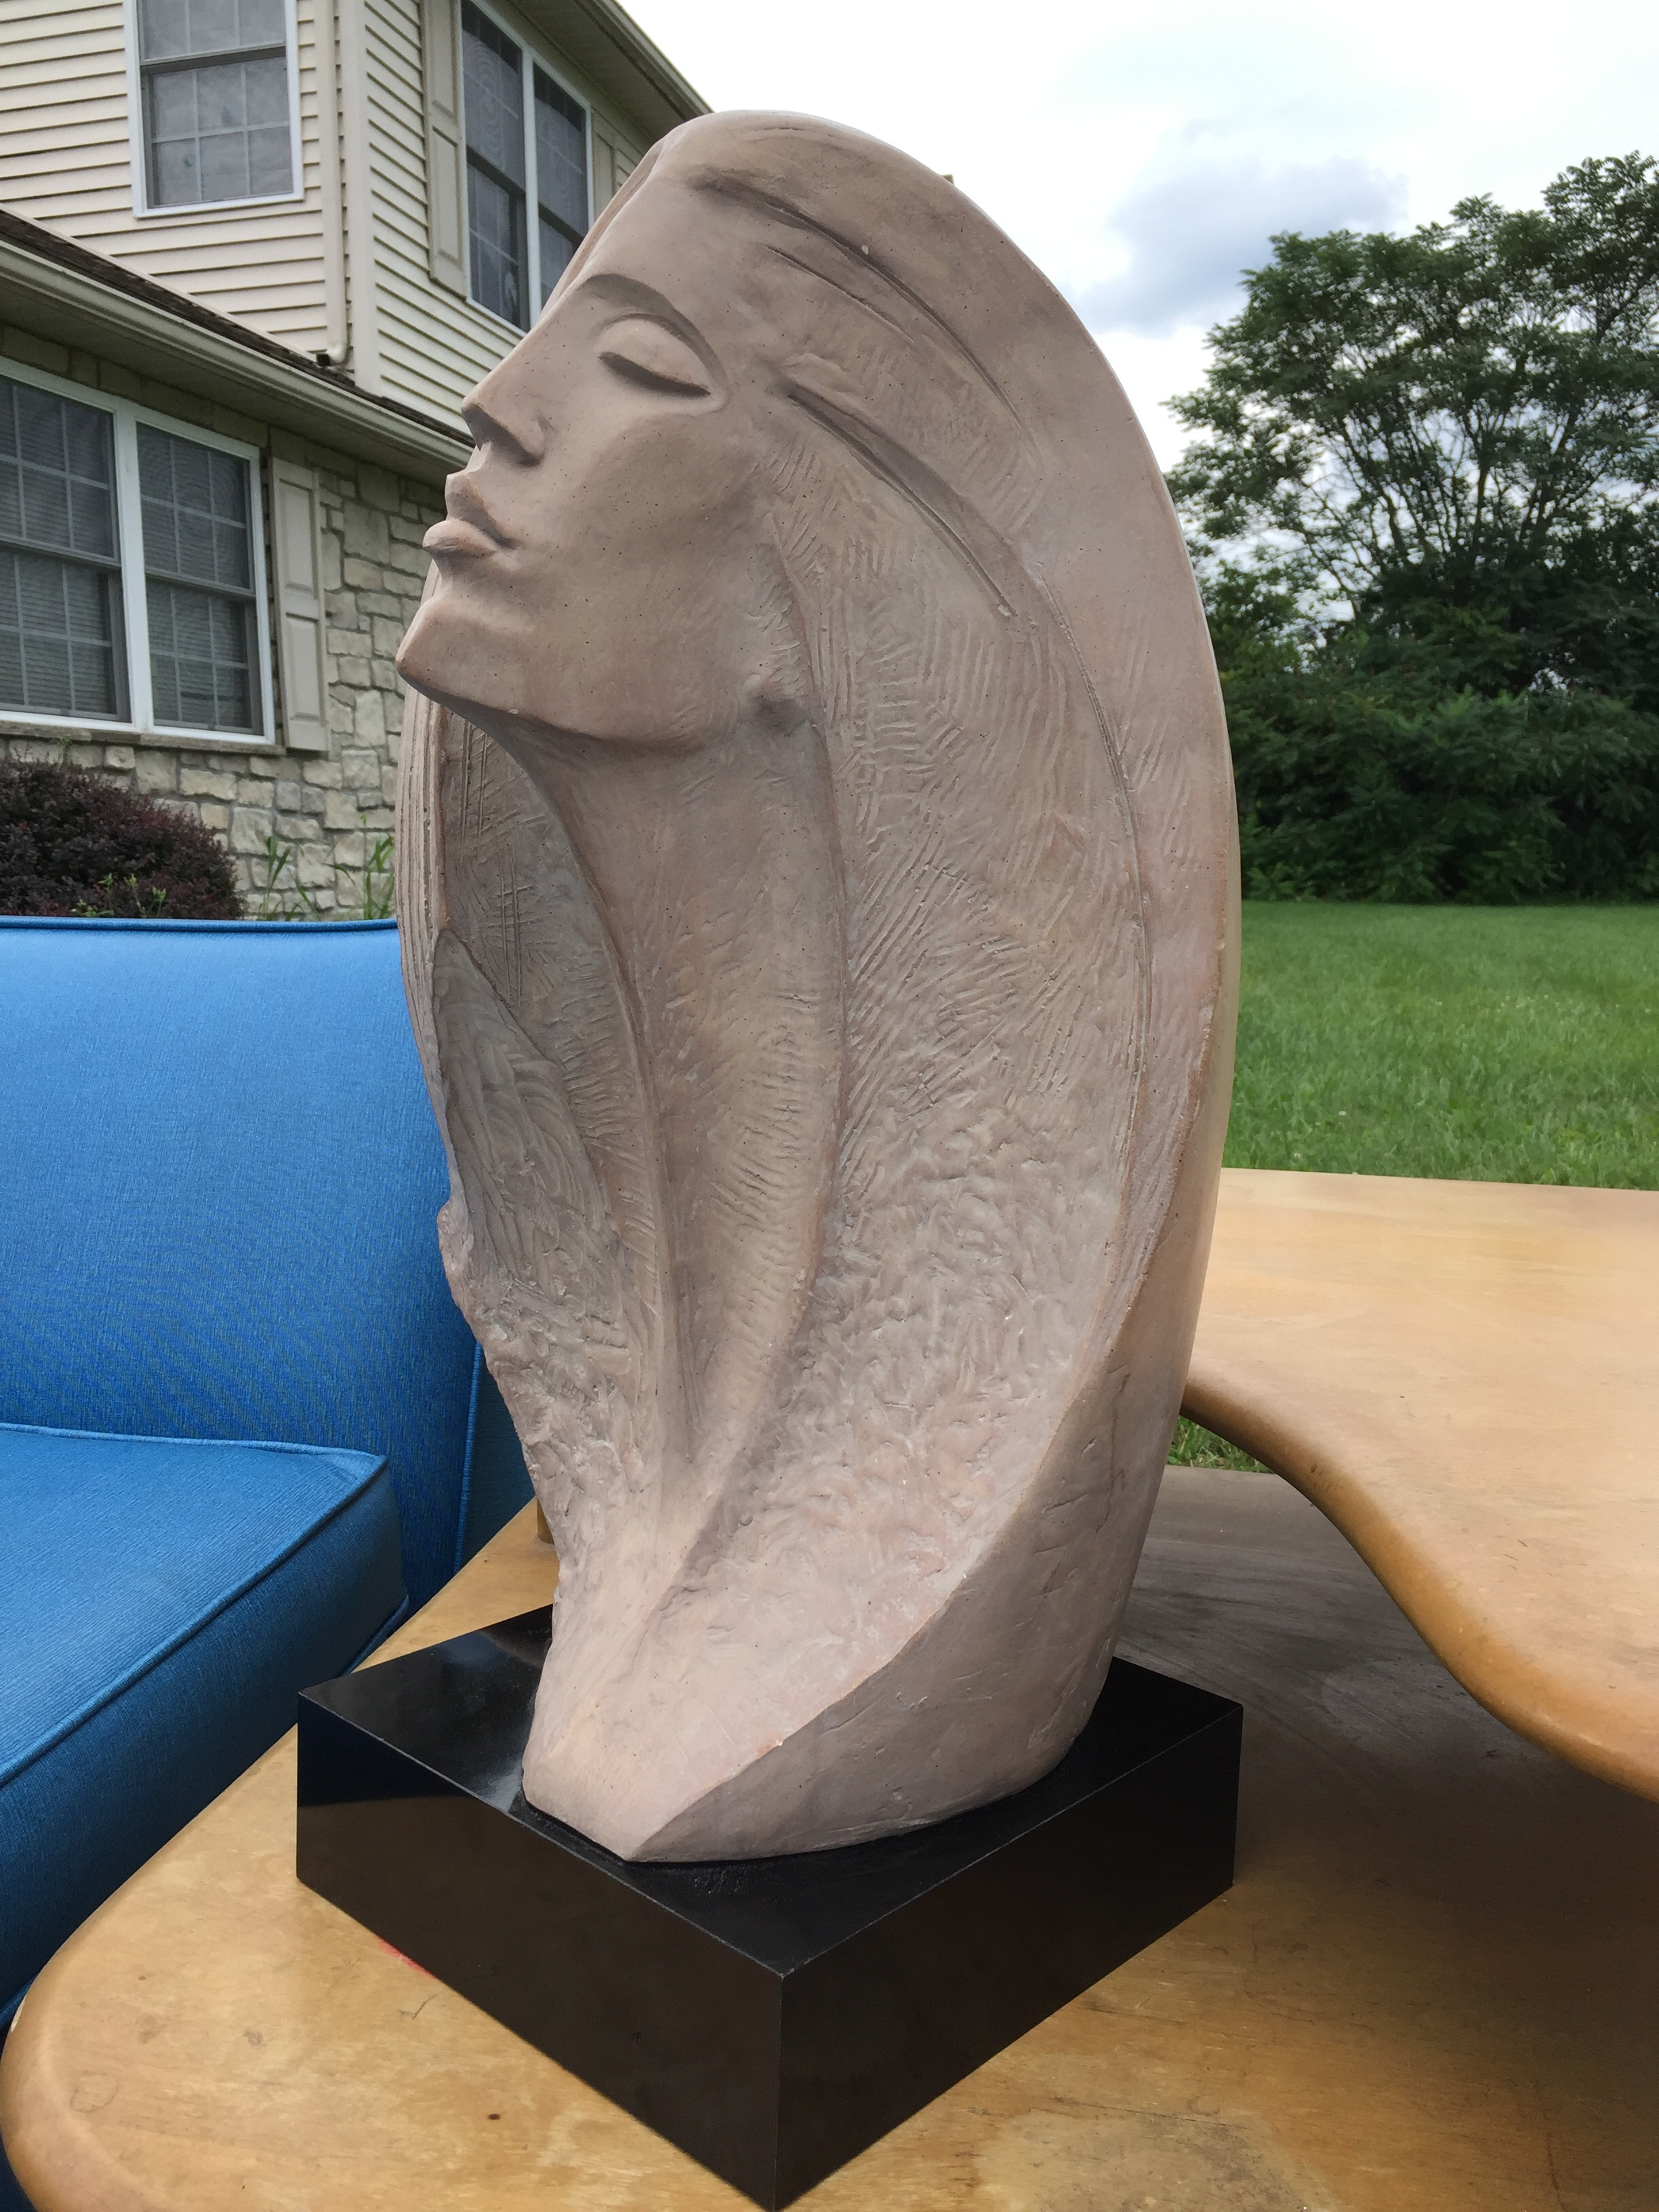 Also picked up this amazing Austin Productions post modern sculpture by David Fisher, Russian American artist.  She is entitled the Stargazer and stands 2' high.  If you are looking for a stunning sculpture she is in very good condition!